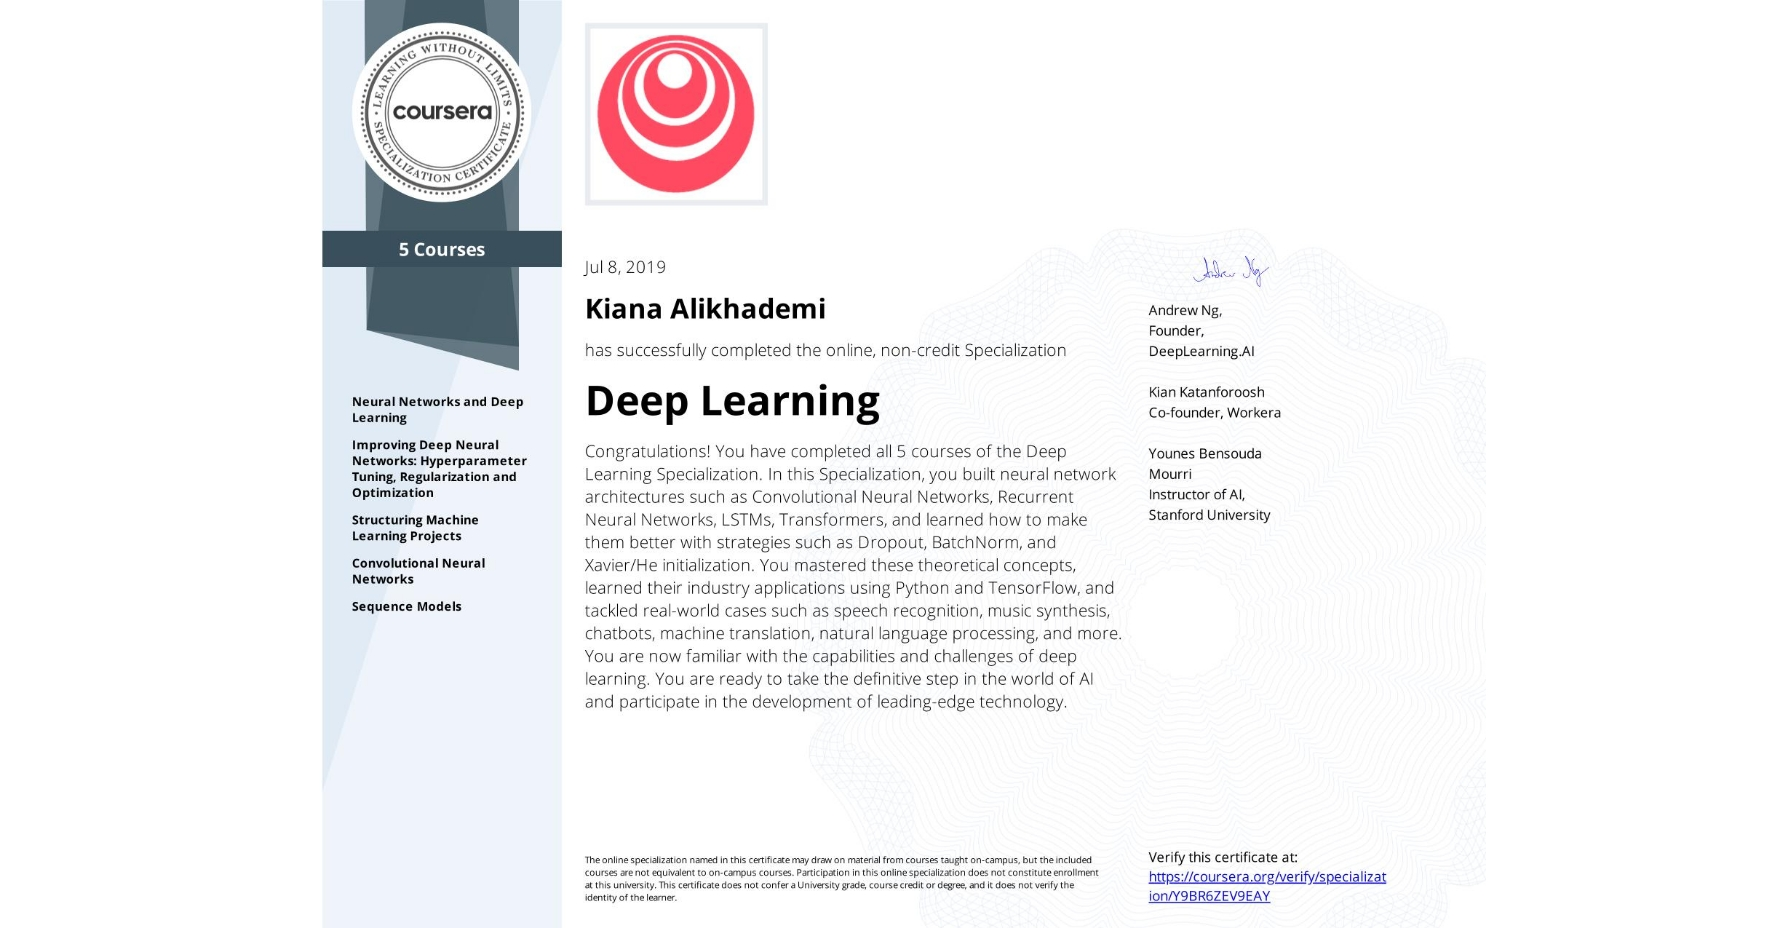 View certificate for Kiana Alikhademi, Deep Learning, offered through Coursera. Congratulations! You have completed all 5 courses of the Deep Learning Specialization.  In this Specialization, you built neural network architectures such as Convolutional Neural Networks, Recurrent Neural Networks, LSTMs, Transformers, and learned how to make them better with strategies such as Dropout, BatchNorm, and Xavier/He initialization. You mastered these theoretical concepts, learned their industry applications using Python and TensorFlow, and tackled real-world cases such as speech recognition, music synthesis, chatbots, machine translation, natural language processing, and more.  You are now familiar with the capabilities and challenges of deep learning. You are ready to take the definitive step in the world of AI and participate in the development of leading-edge technology.